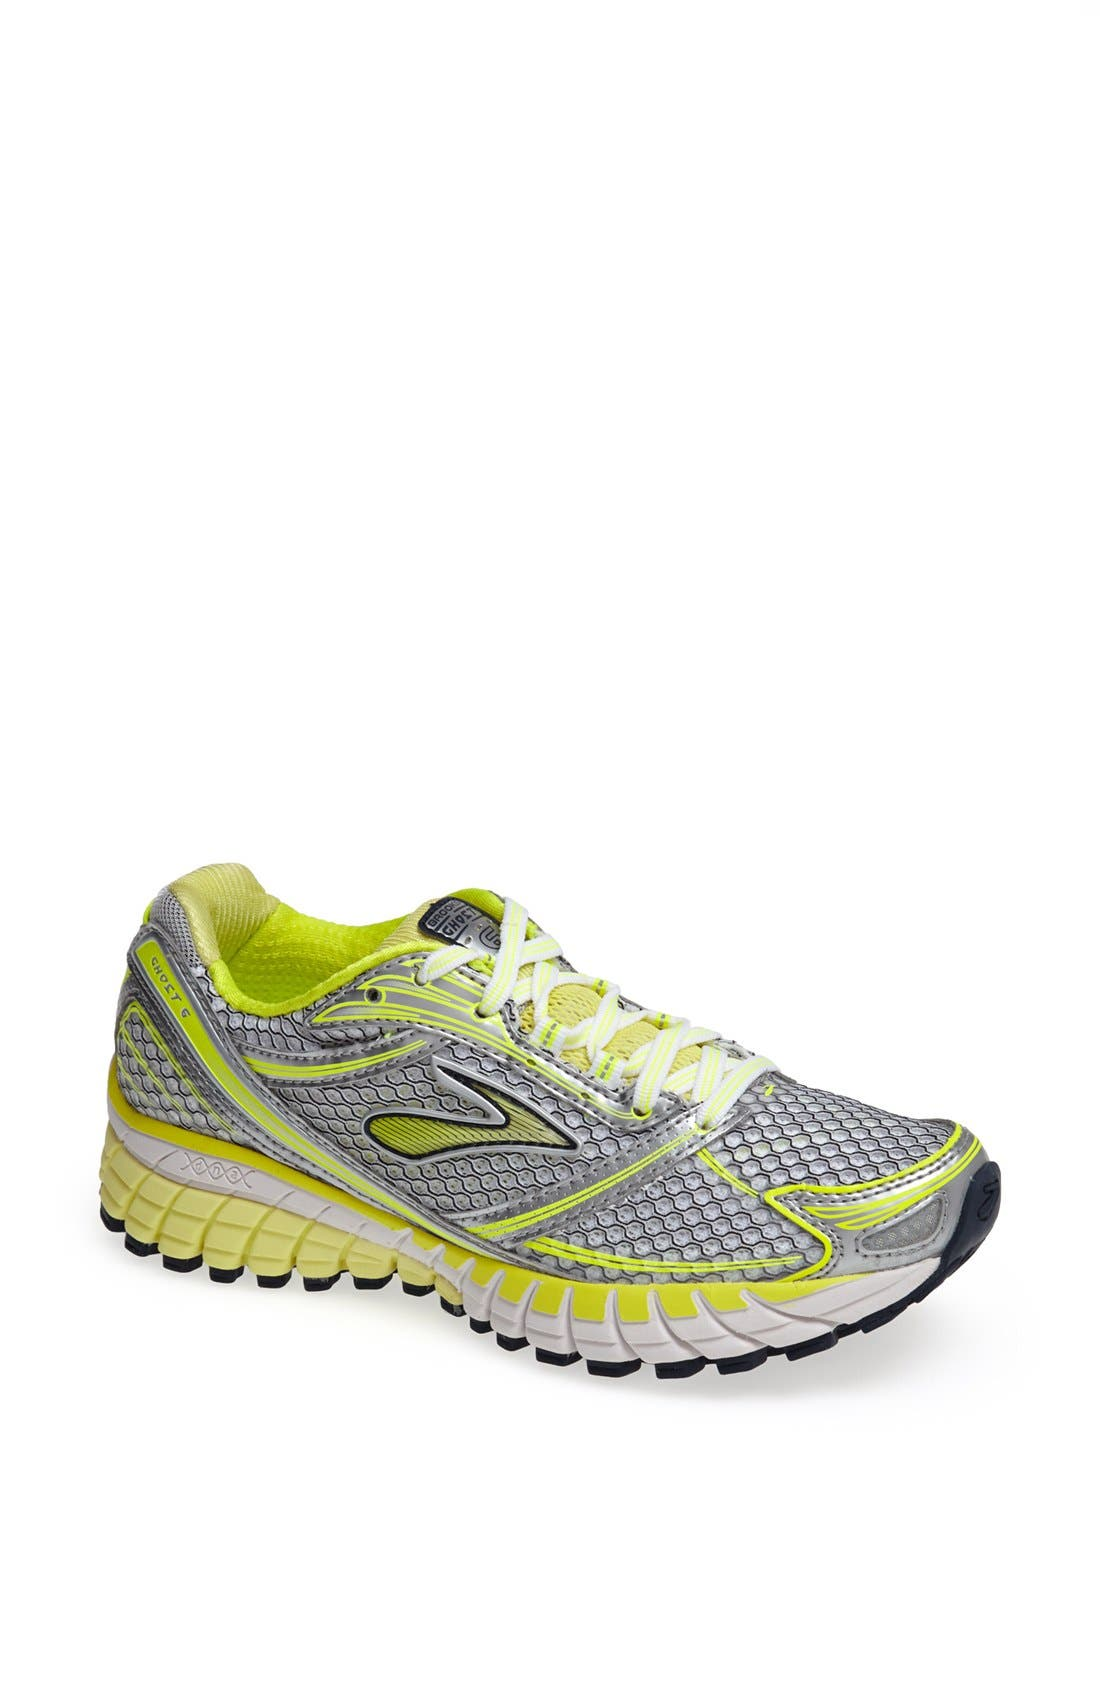 Main Image - Brooks 'Ghost 6' Running Shoe (Women) (Regular Retail Price: $109.95)